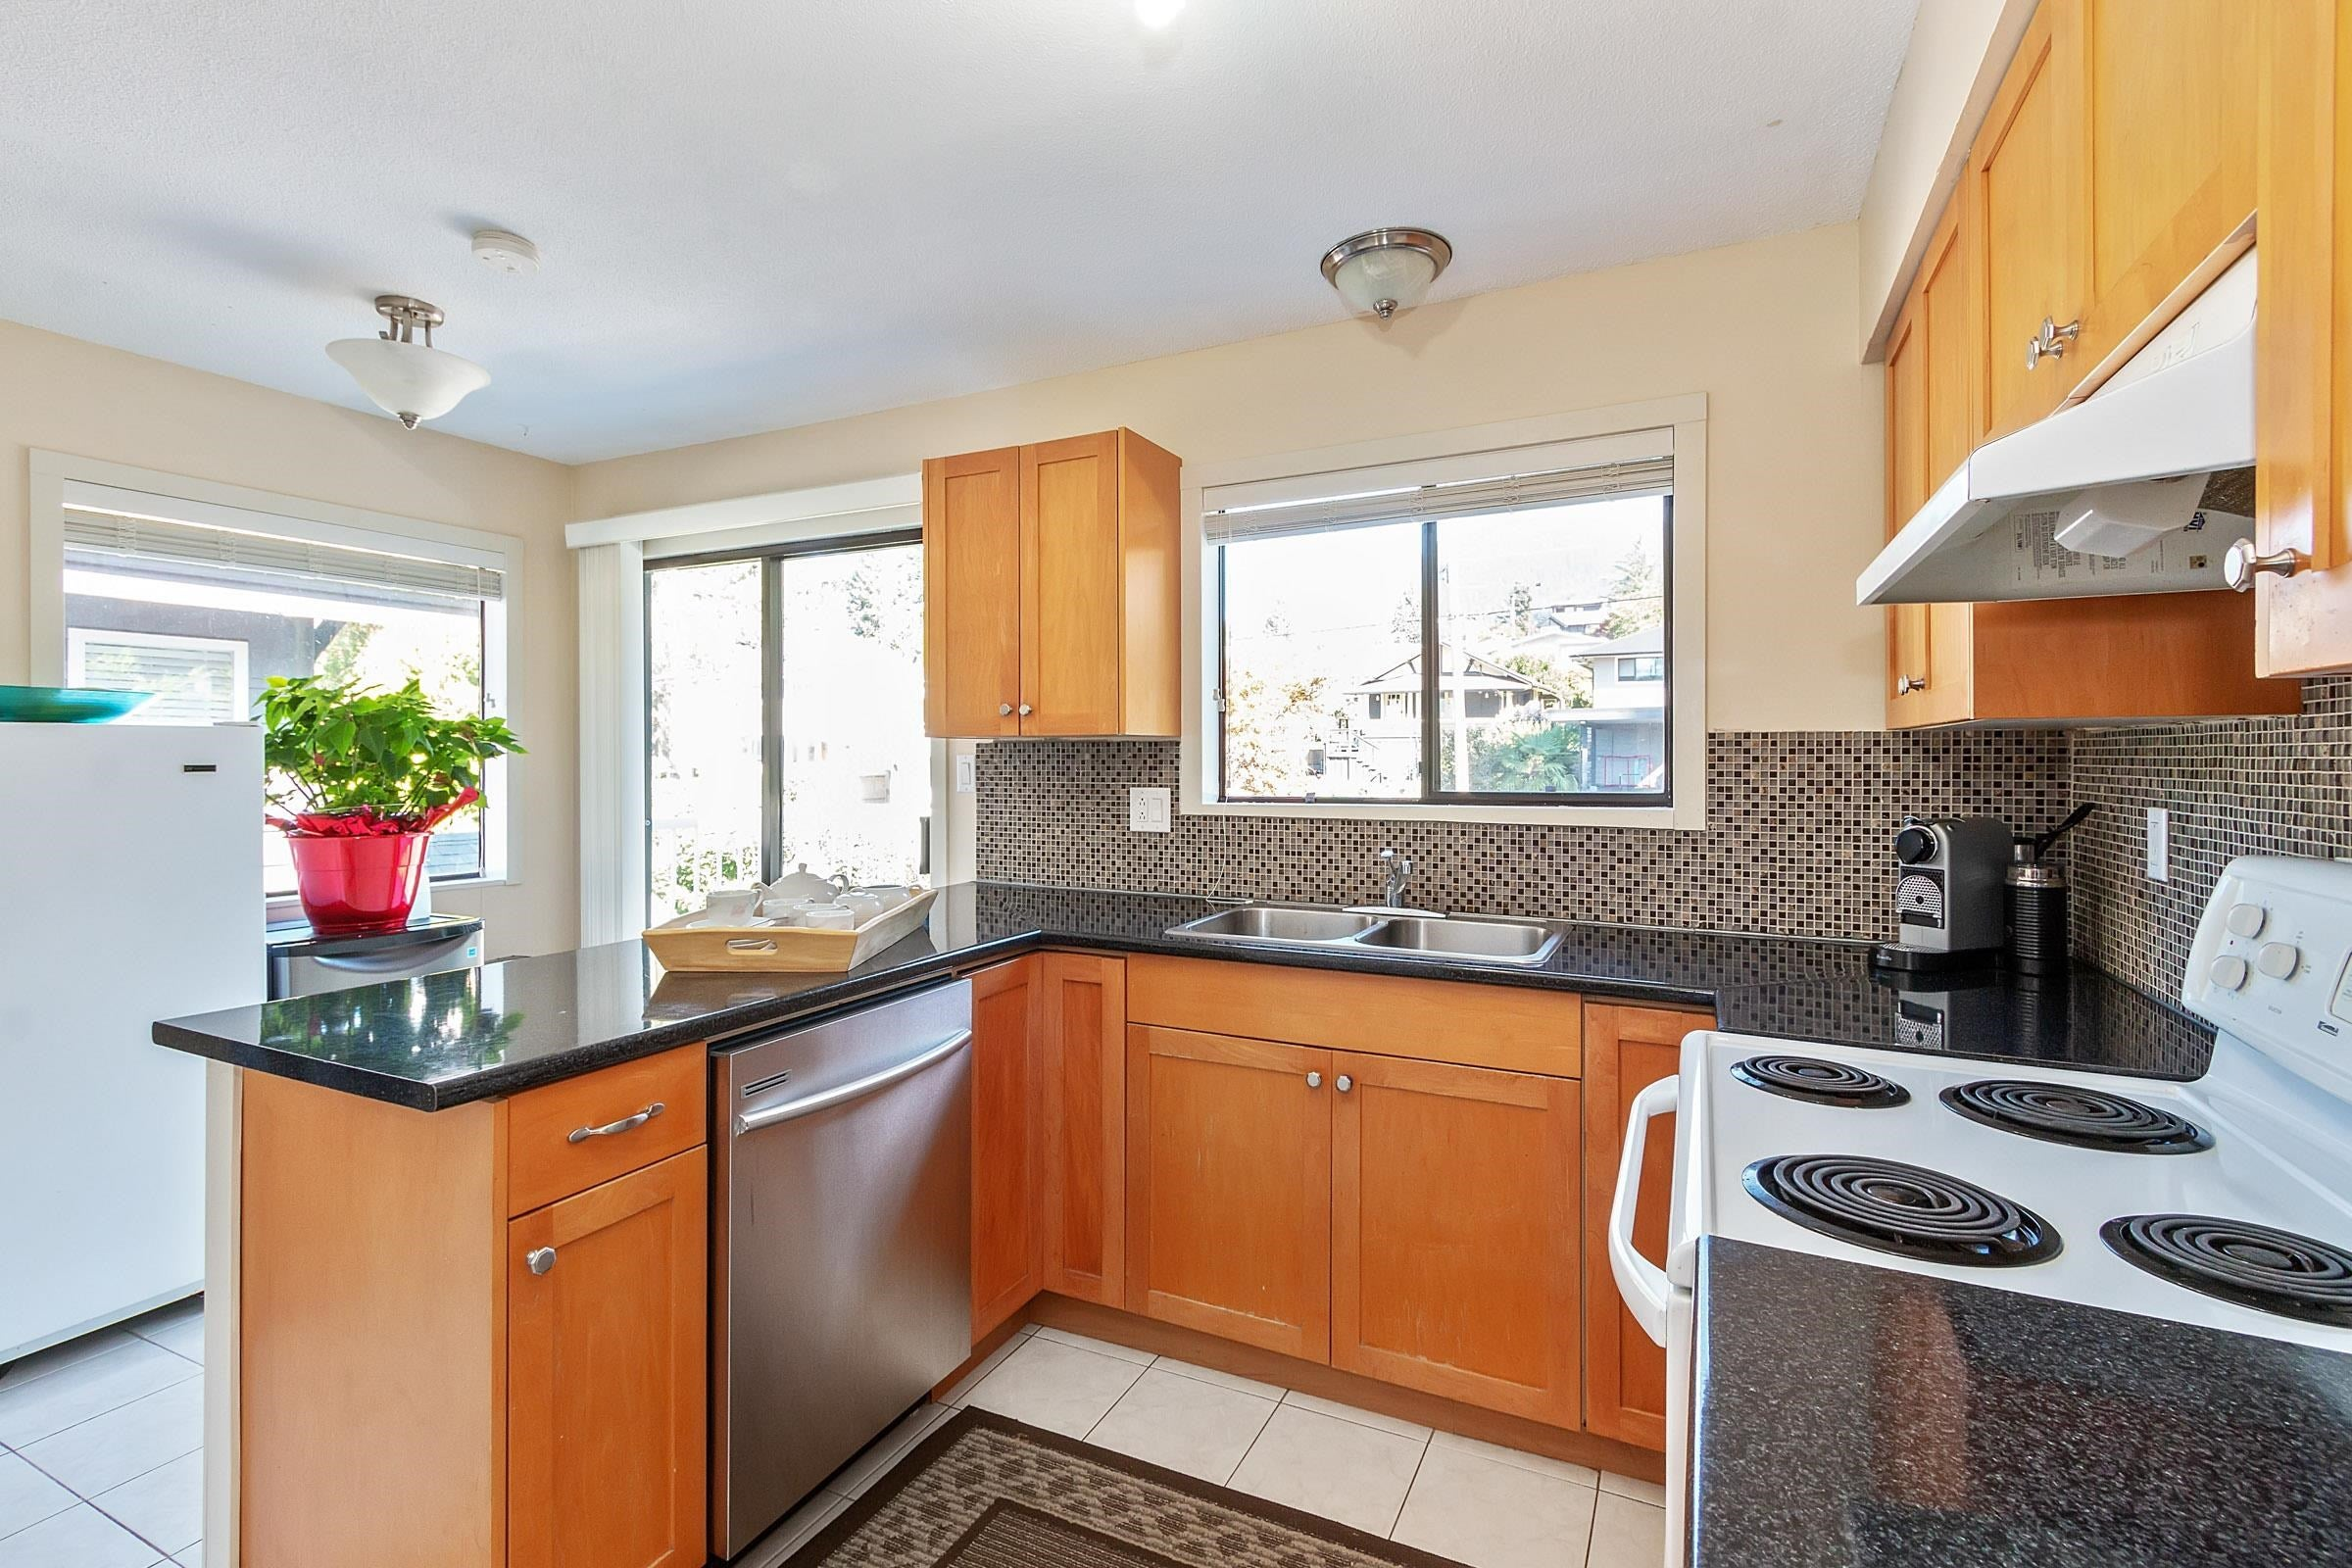 117 W ST. JAMES ROAD - Upper Lonsdale House/Single Family for sale, 5 Bedrooms (R2614107) - #8